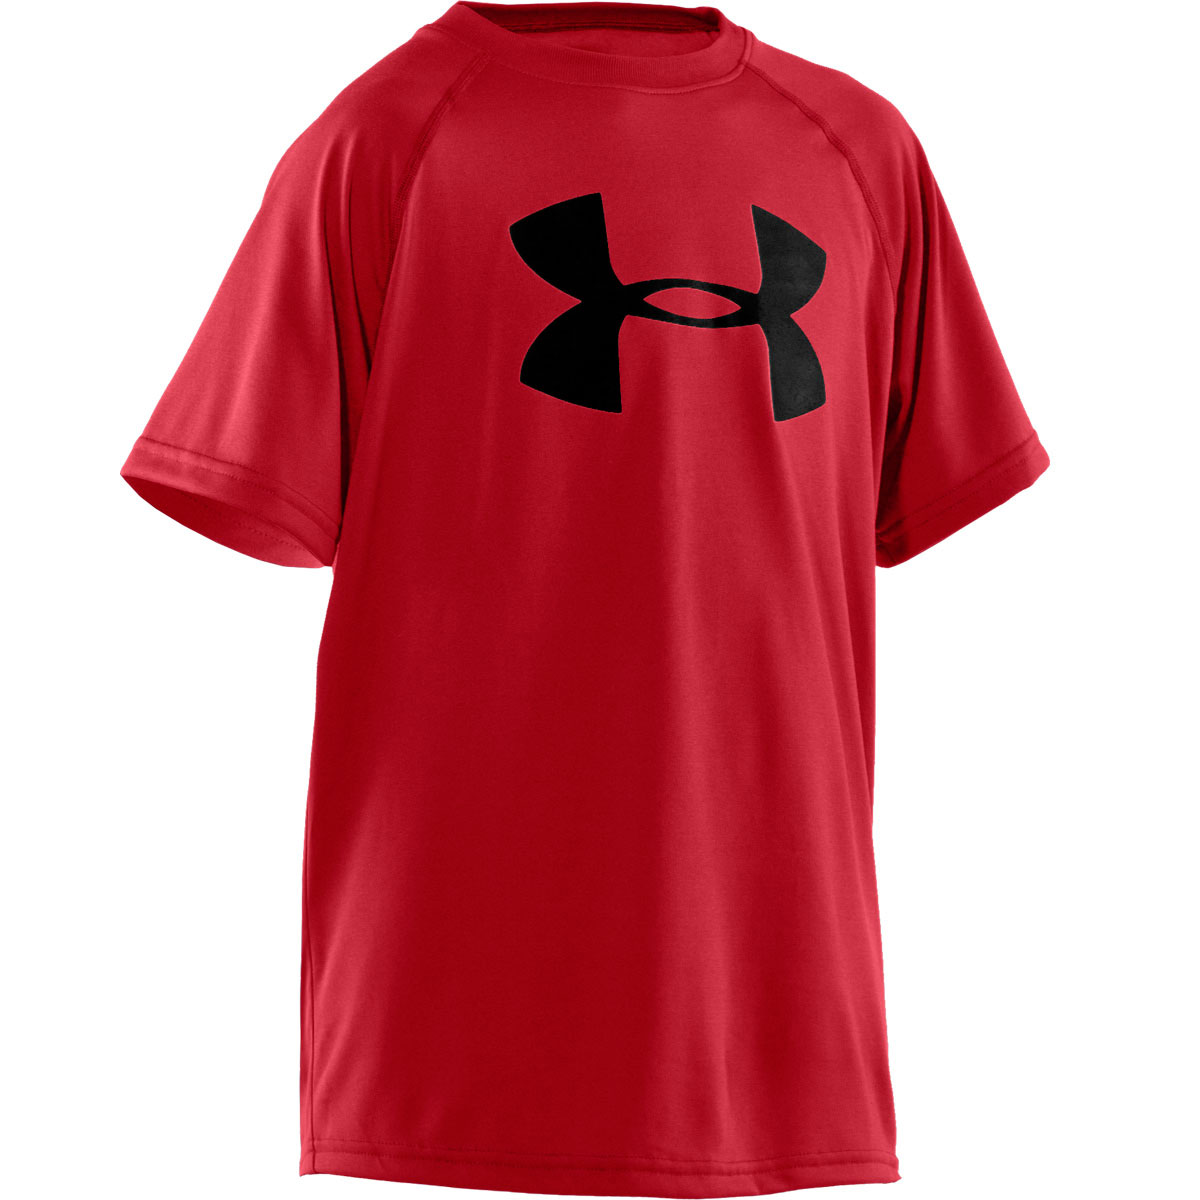 Under armour boys ua tech big logo short sleeve t shirt for Under armour swim shirt youth